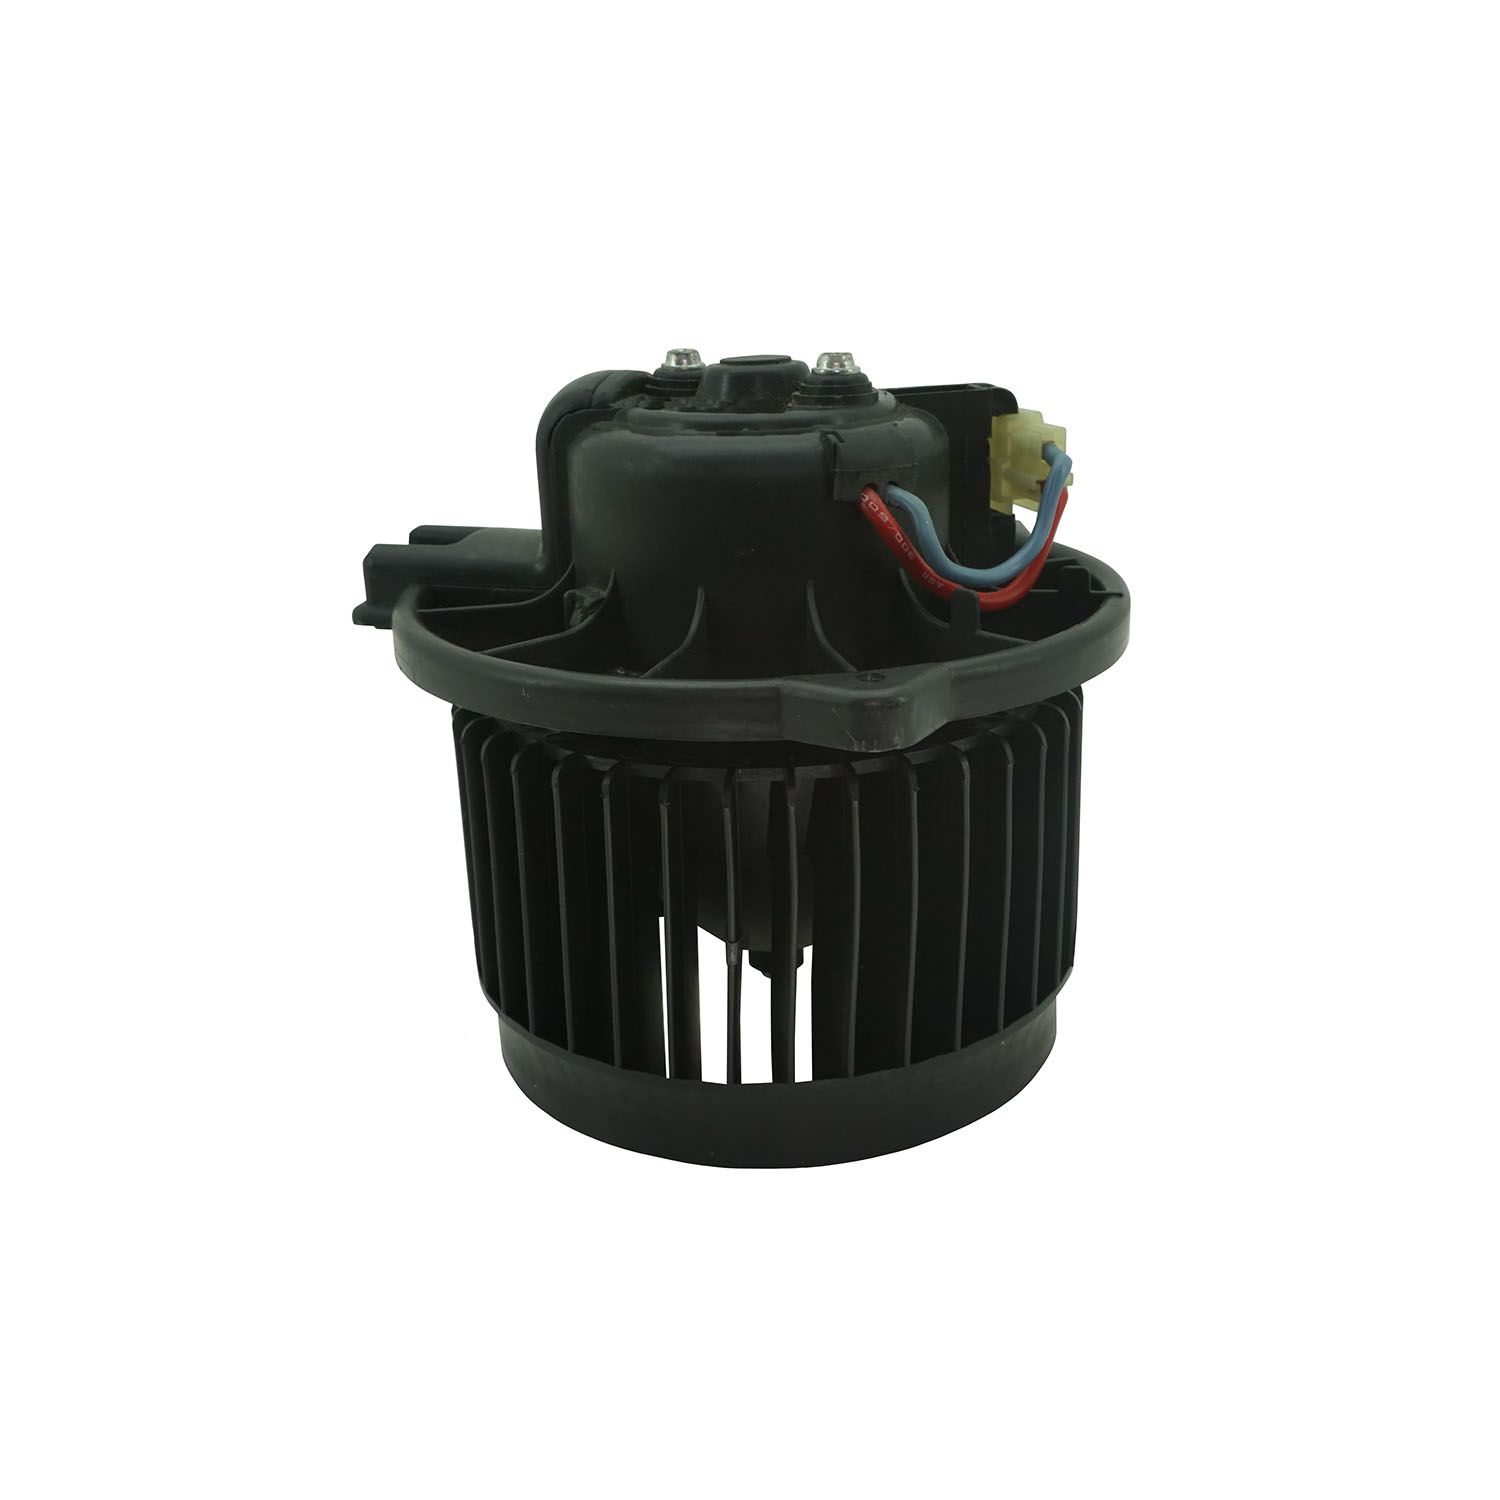 Ventilador Interno do Honda Fit - 12 V